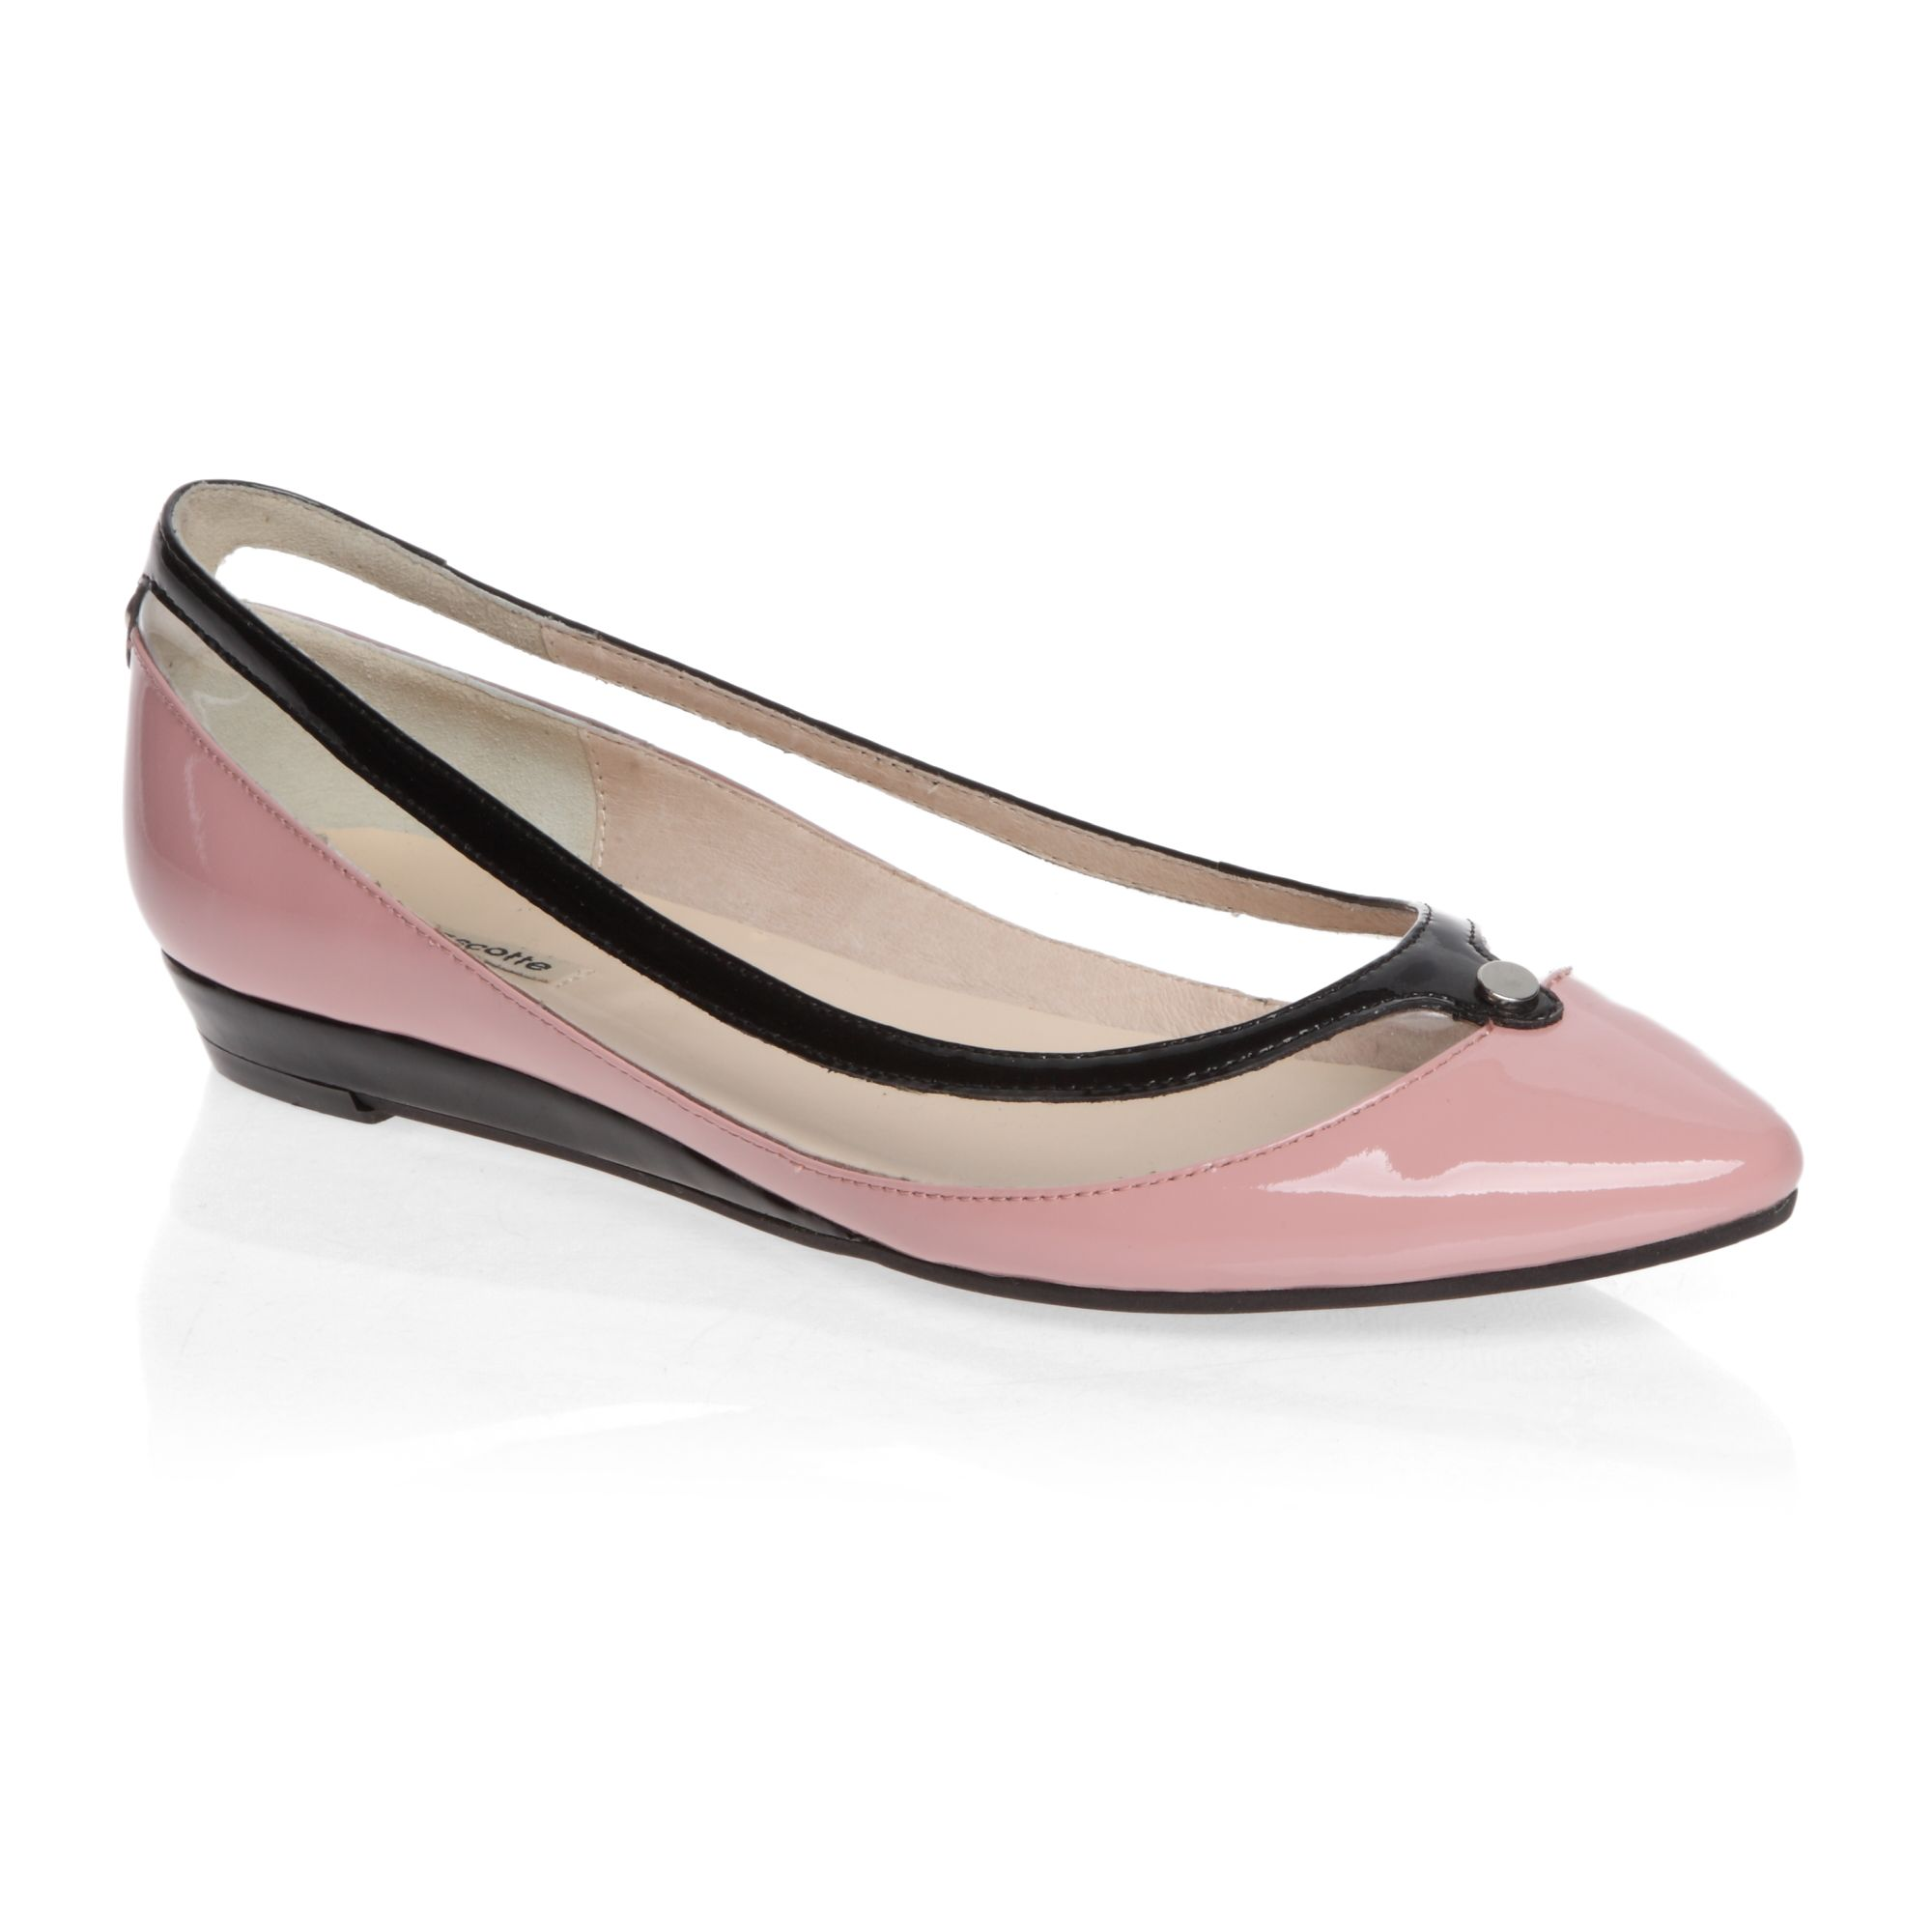 Pointed toe ballerina shoes